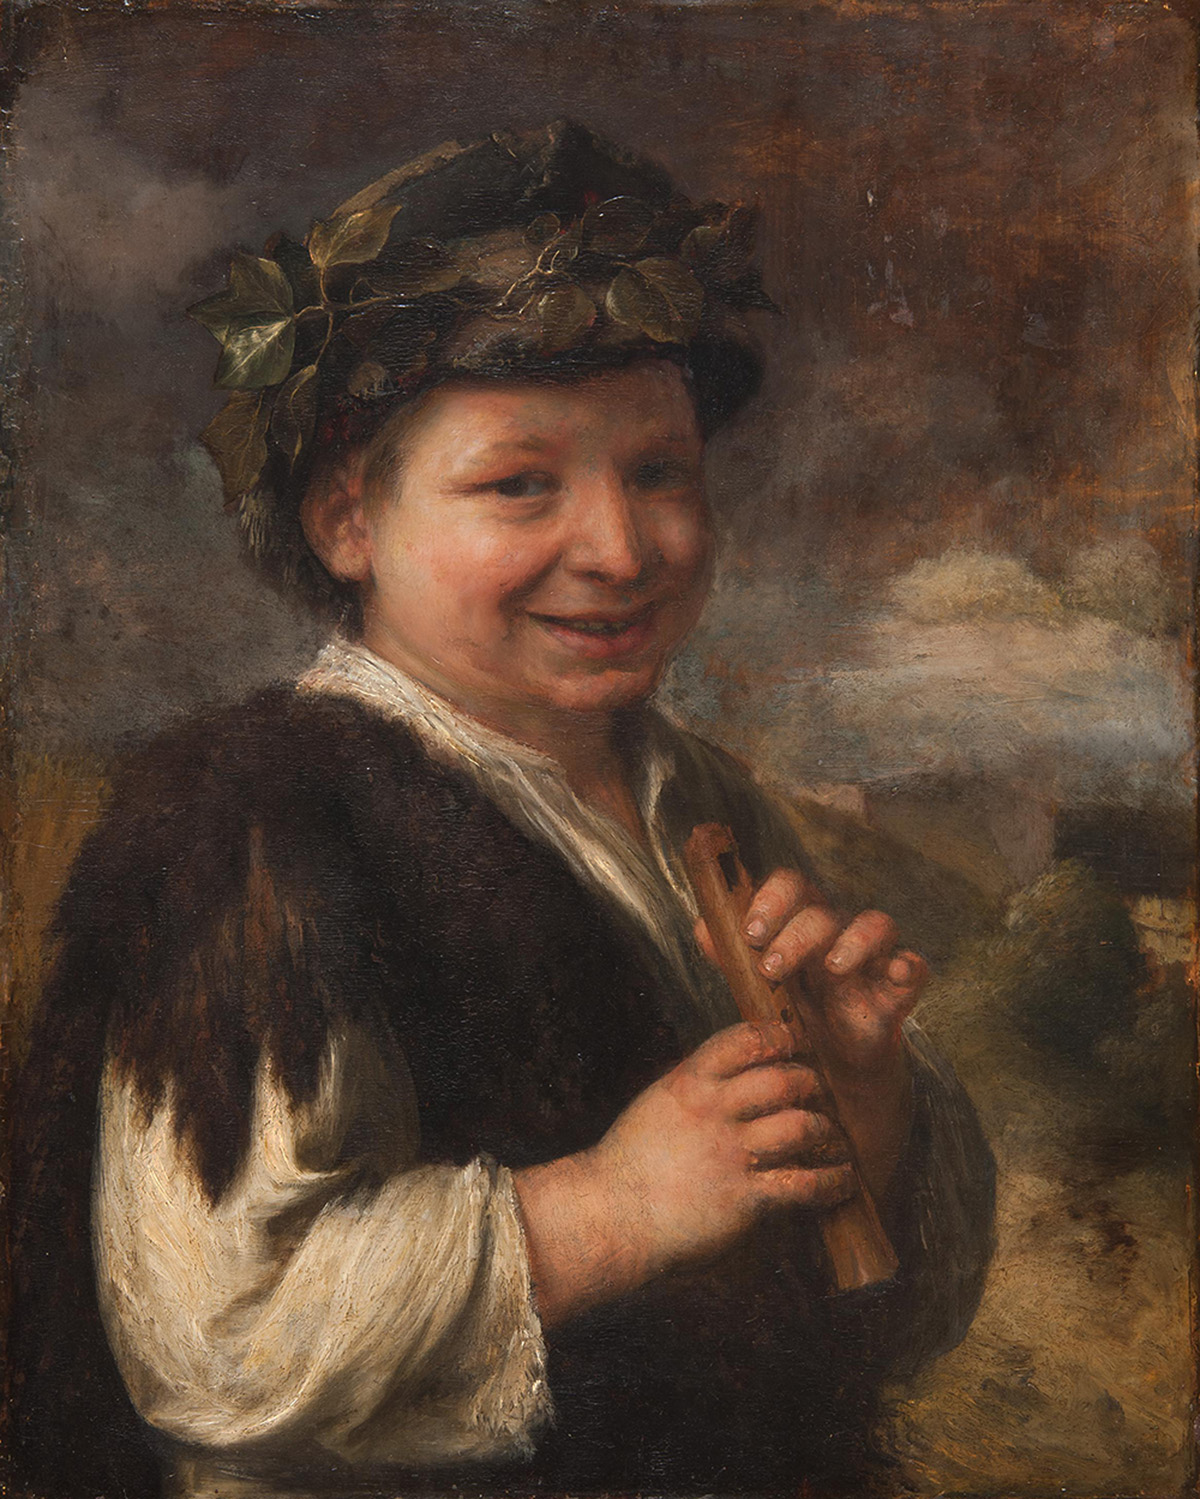 Portrait of a young boy smiling with recorder in hands wearing fur wrap and olive branches in his hair.